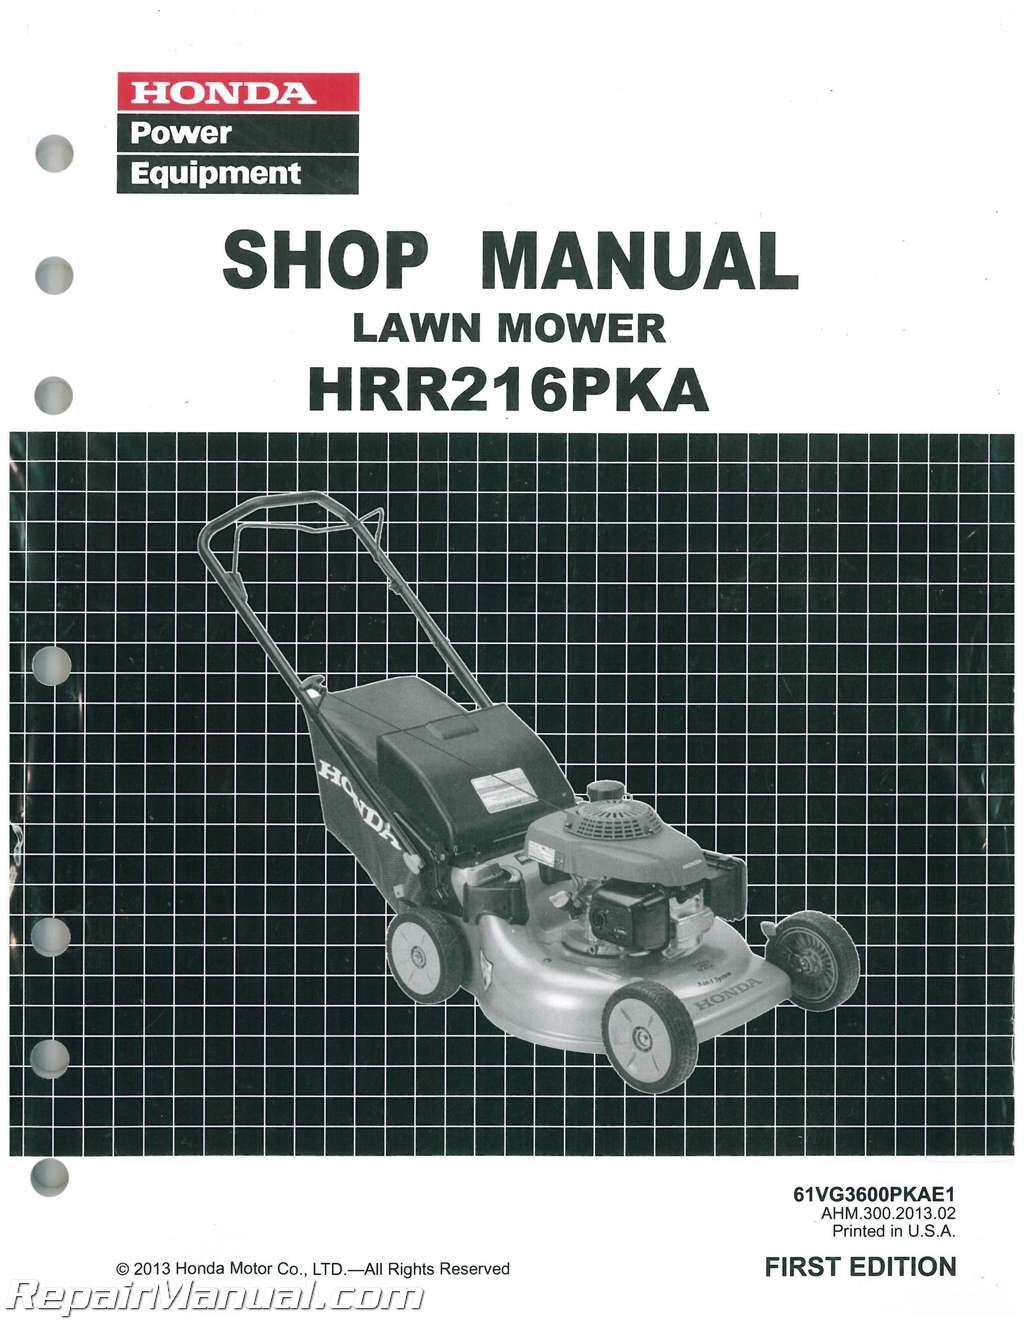 Amazon.com: Honda HRR216 PKA Lawn Mower Service Repair Shop Manual:  Manufacturer: Books